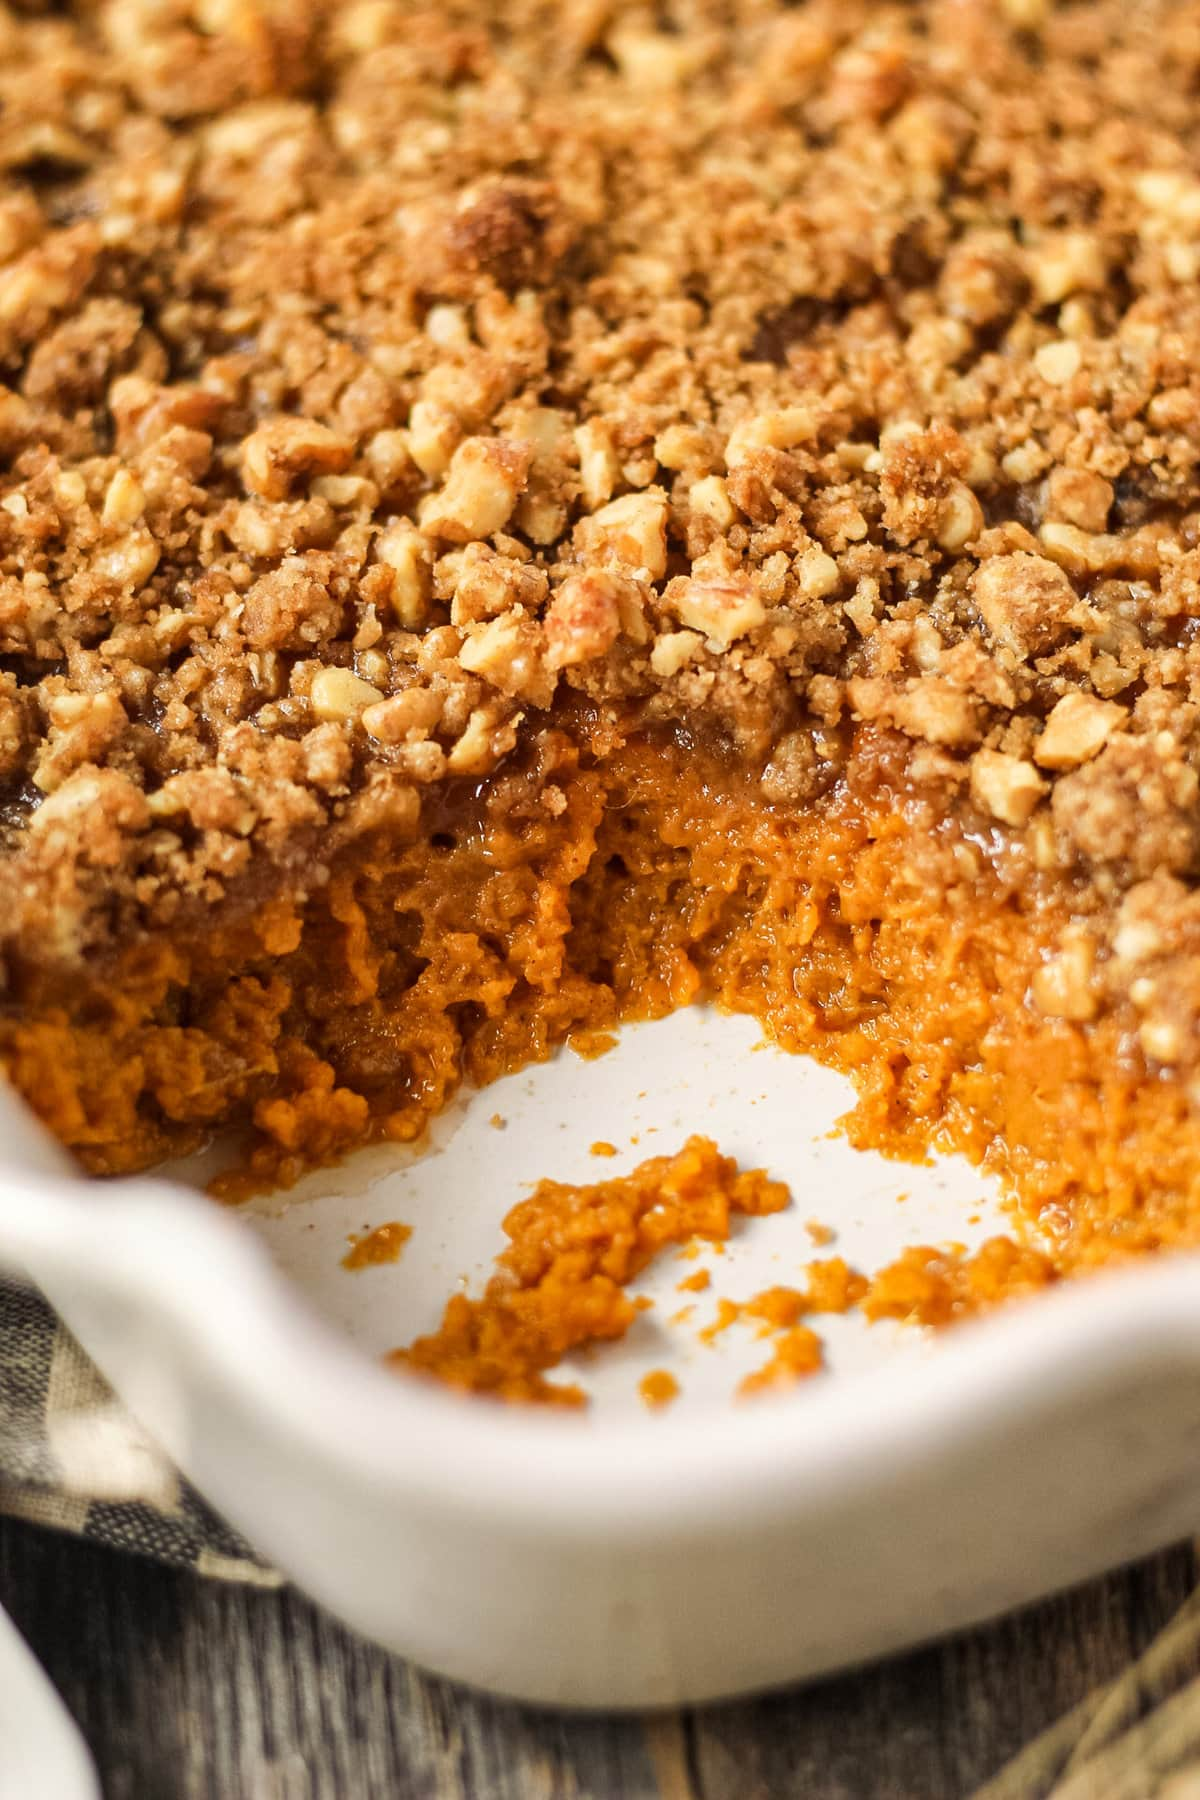 close up shot of maple walnut sweet potato casserole section wher a serving has been removed.